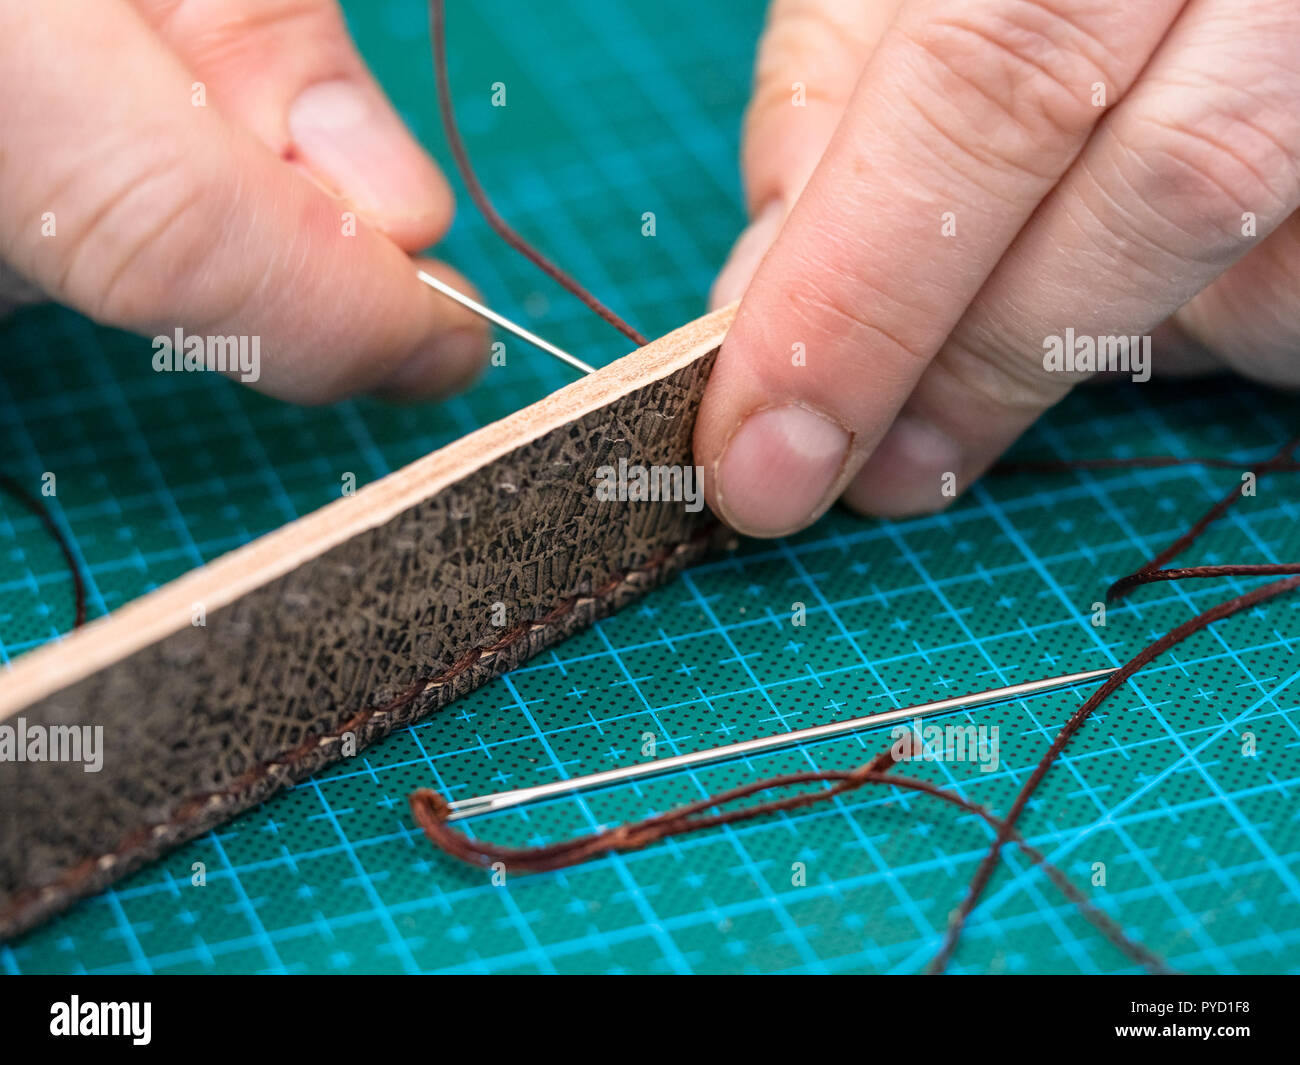 workshop of making the carved leather bag - craftsman stitches the carved brown belt for leather handbag by needle with thread - Stock Image